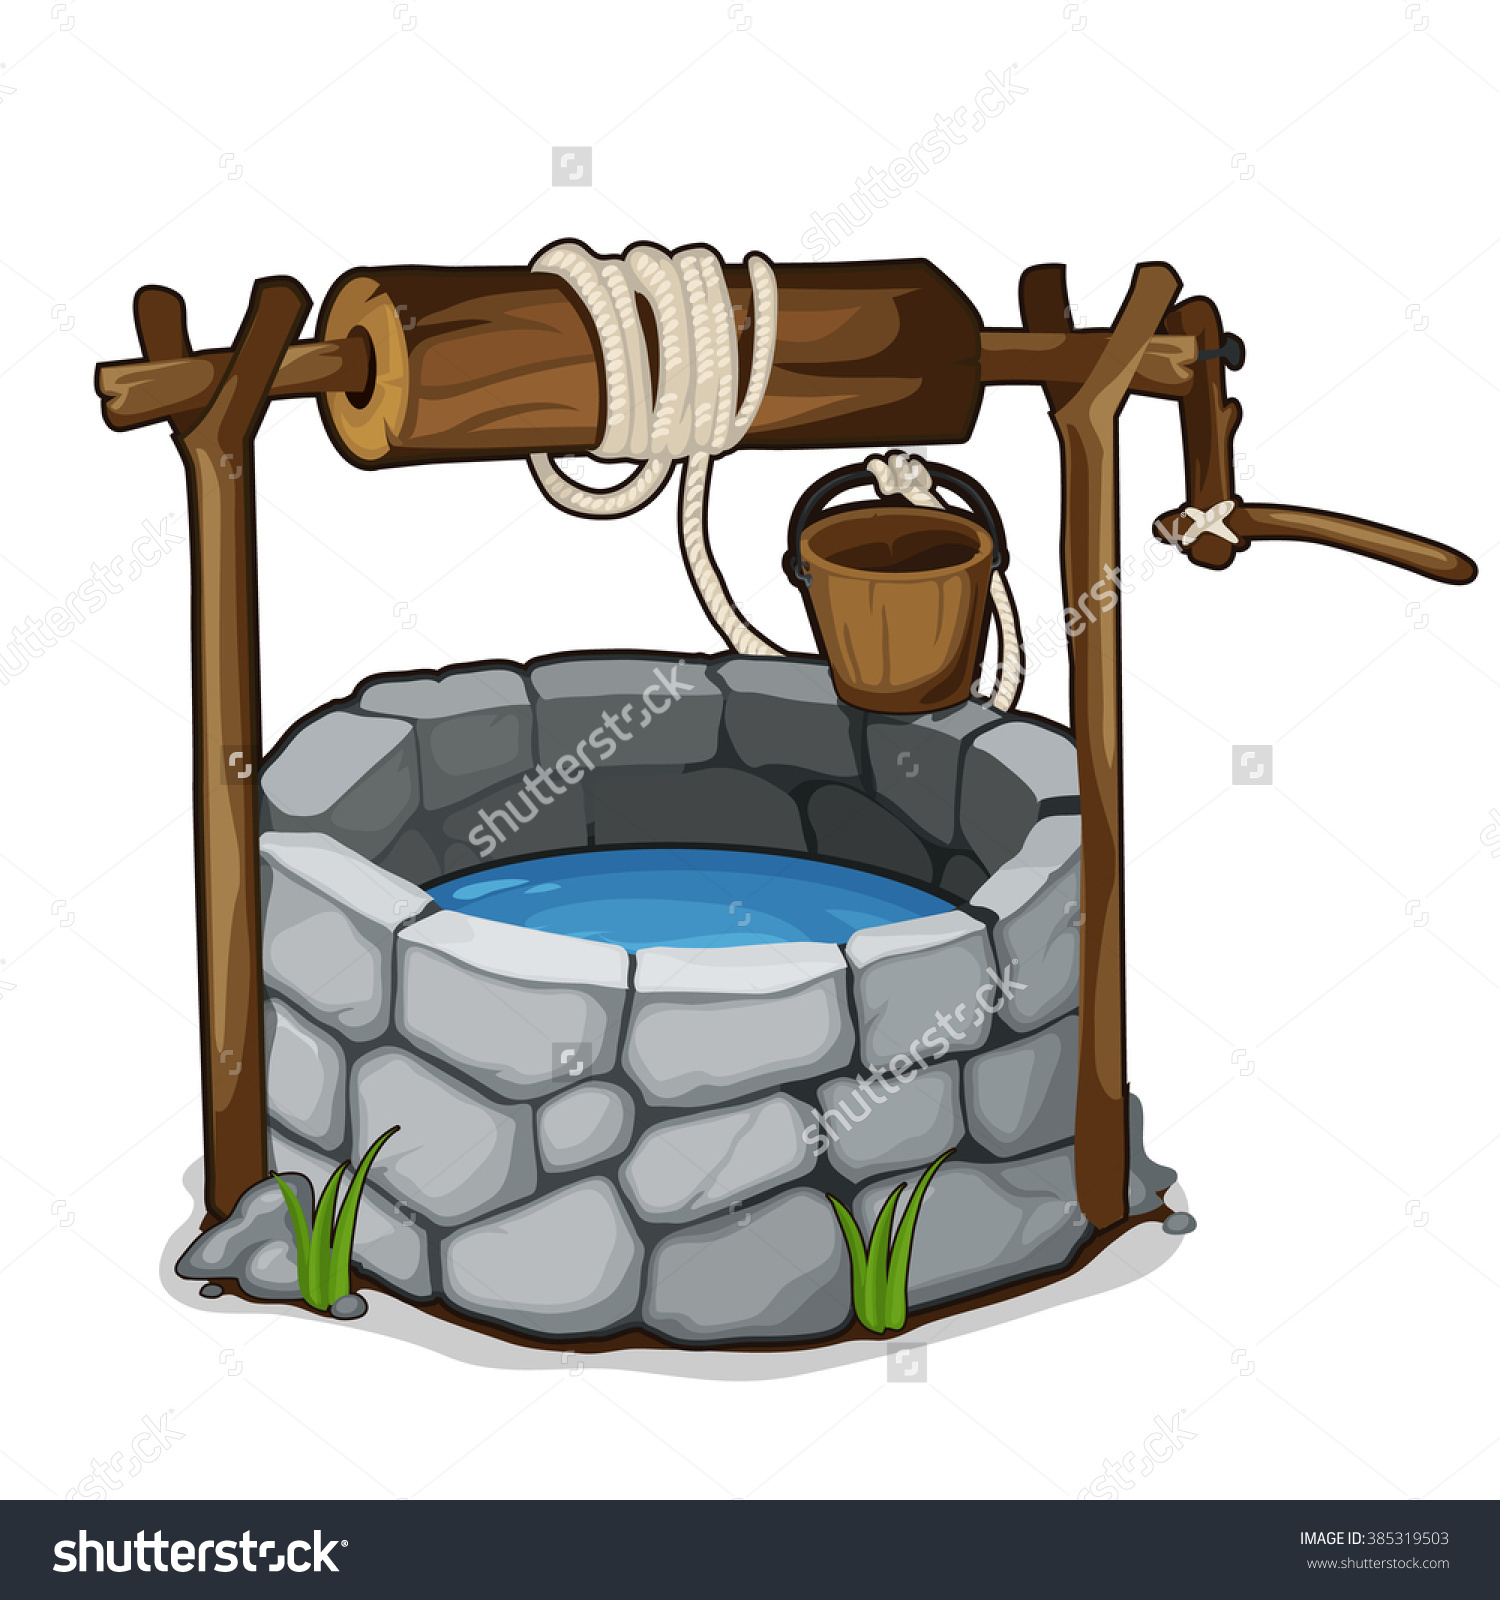 Well Water Clipart.